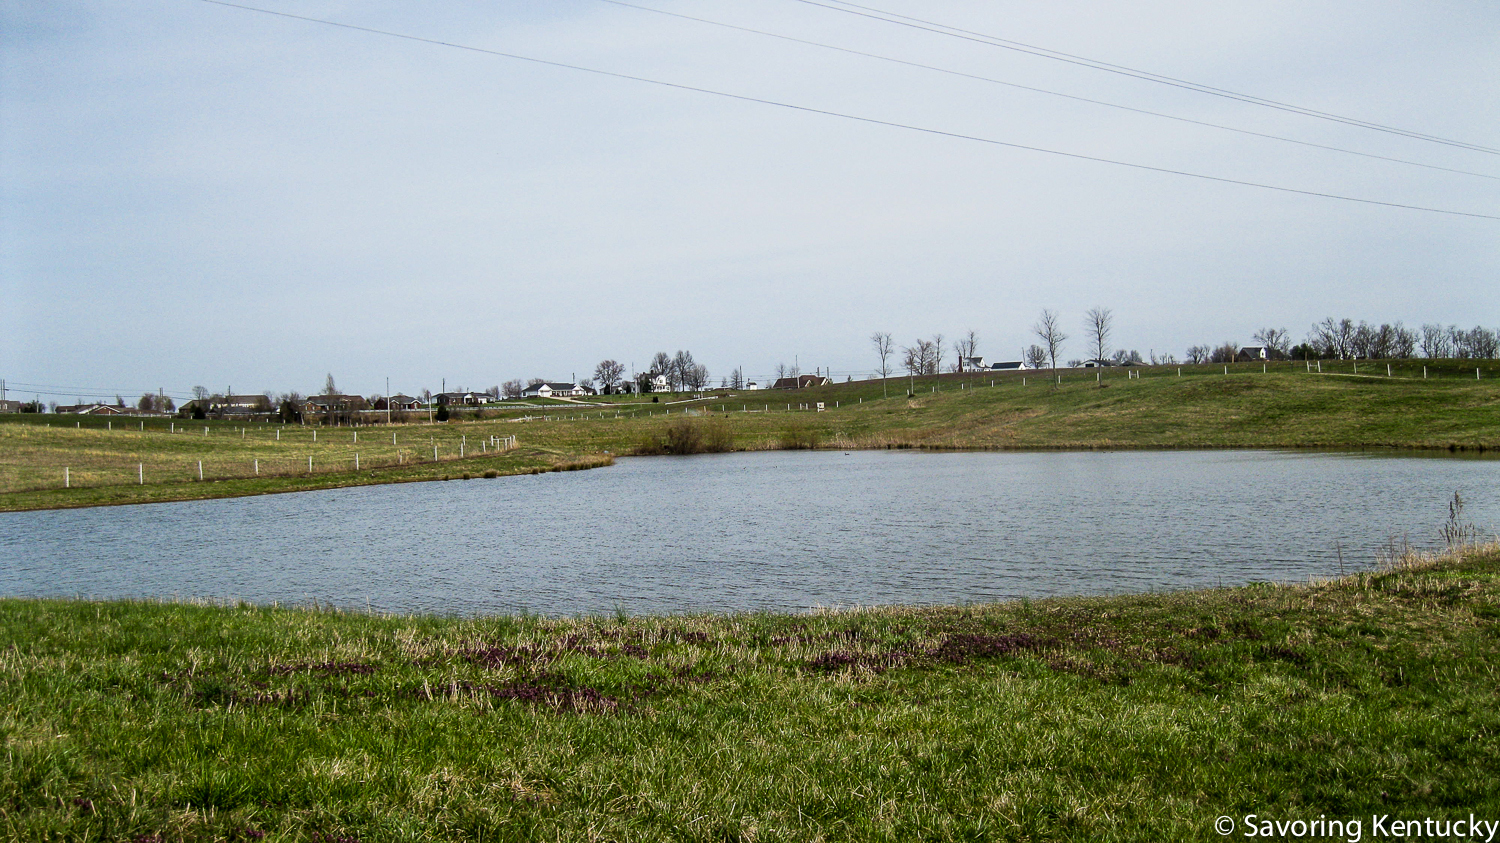 A view across the land at St. Catharine